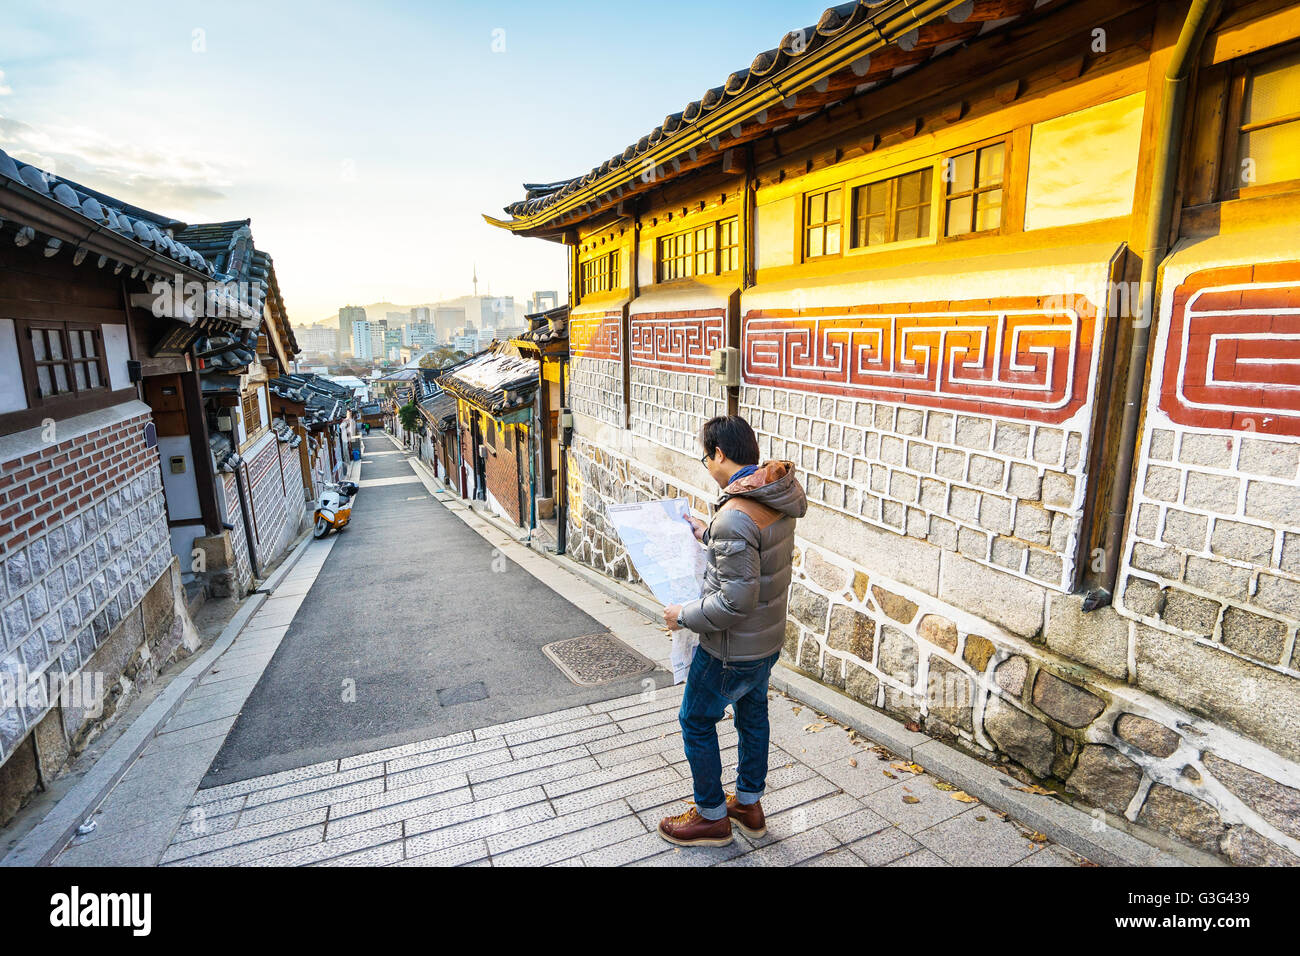 The Traveler at Bukchon Hanok Village in Seoul, South Korea. - Stock Image